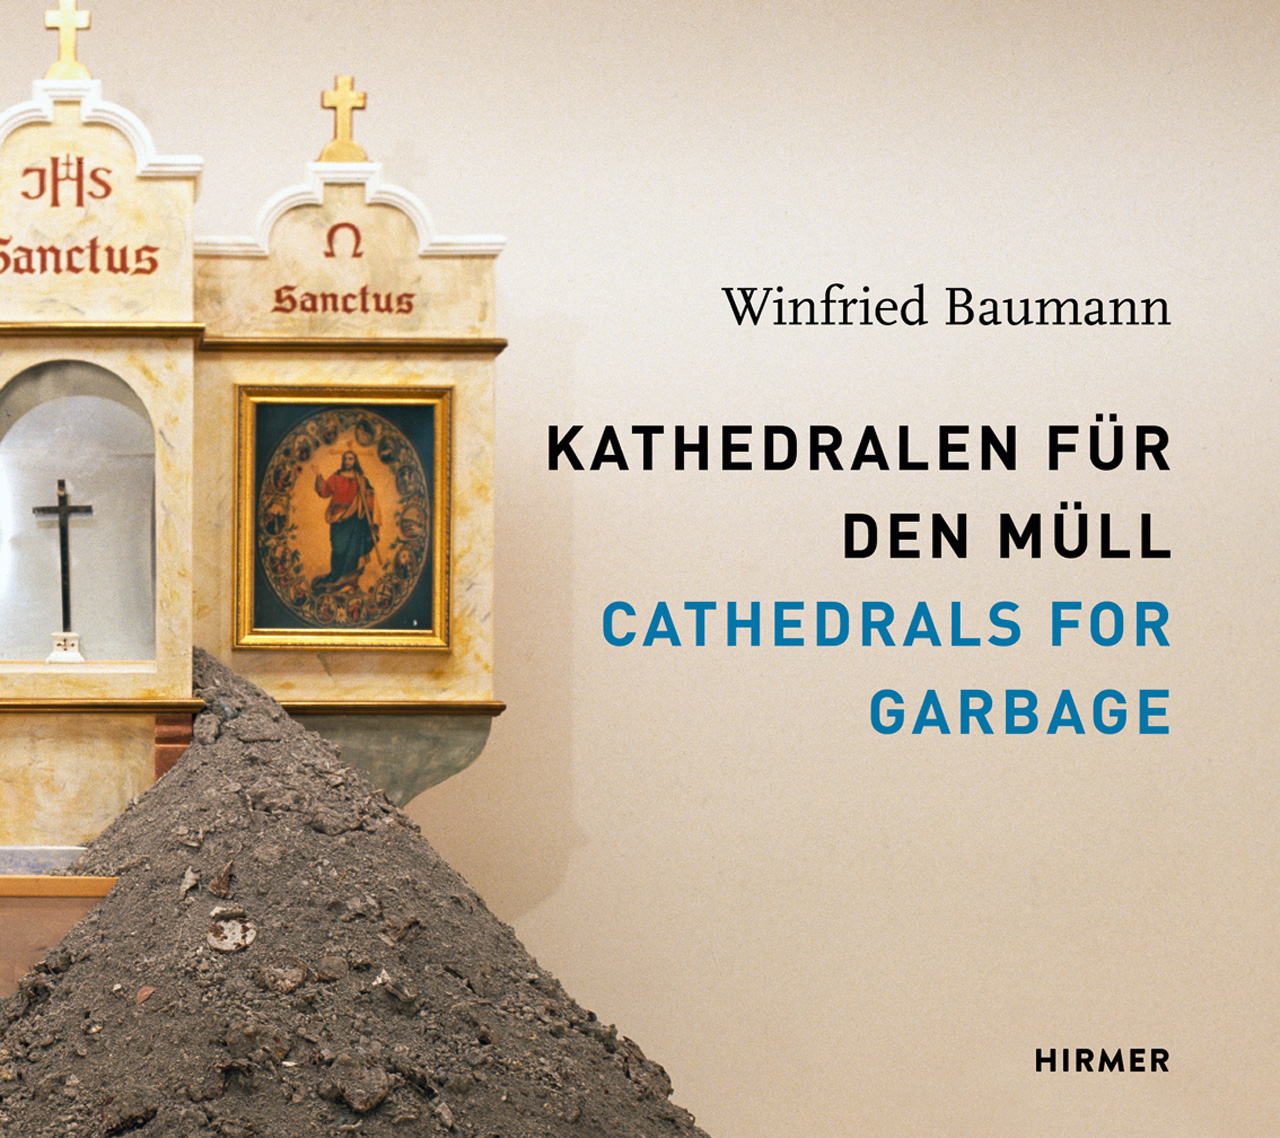 Cathedrals for Garbage: Winfried Baumann